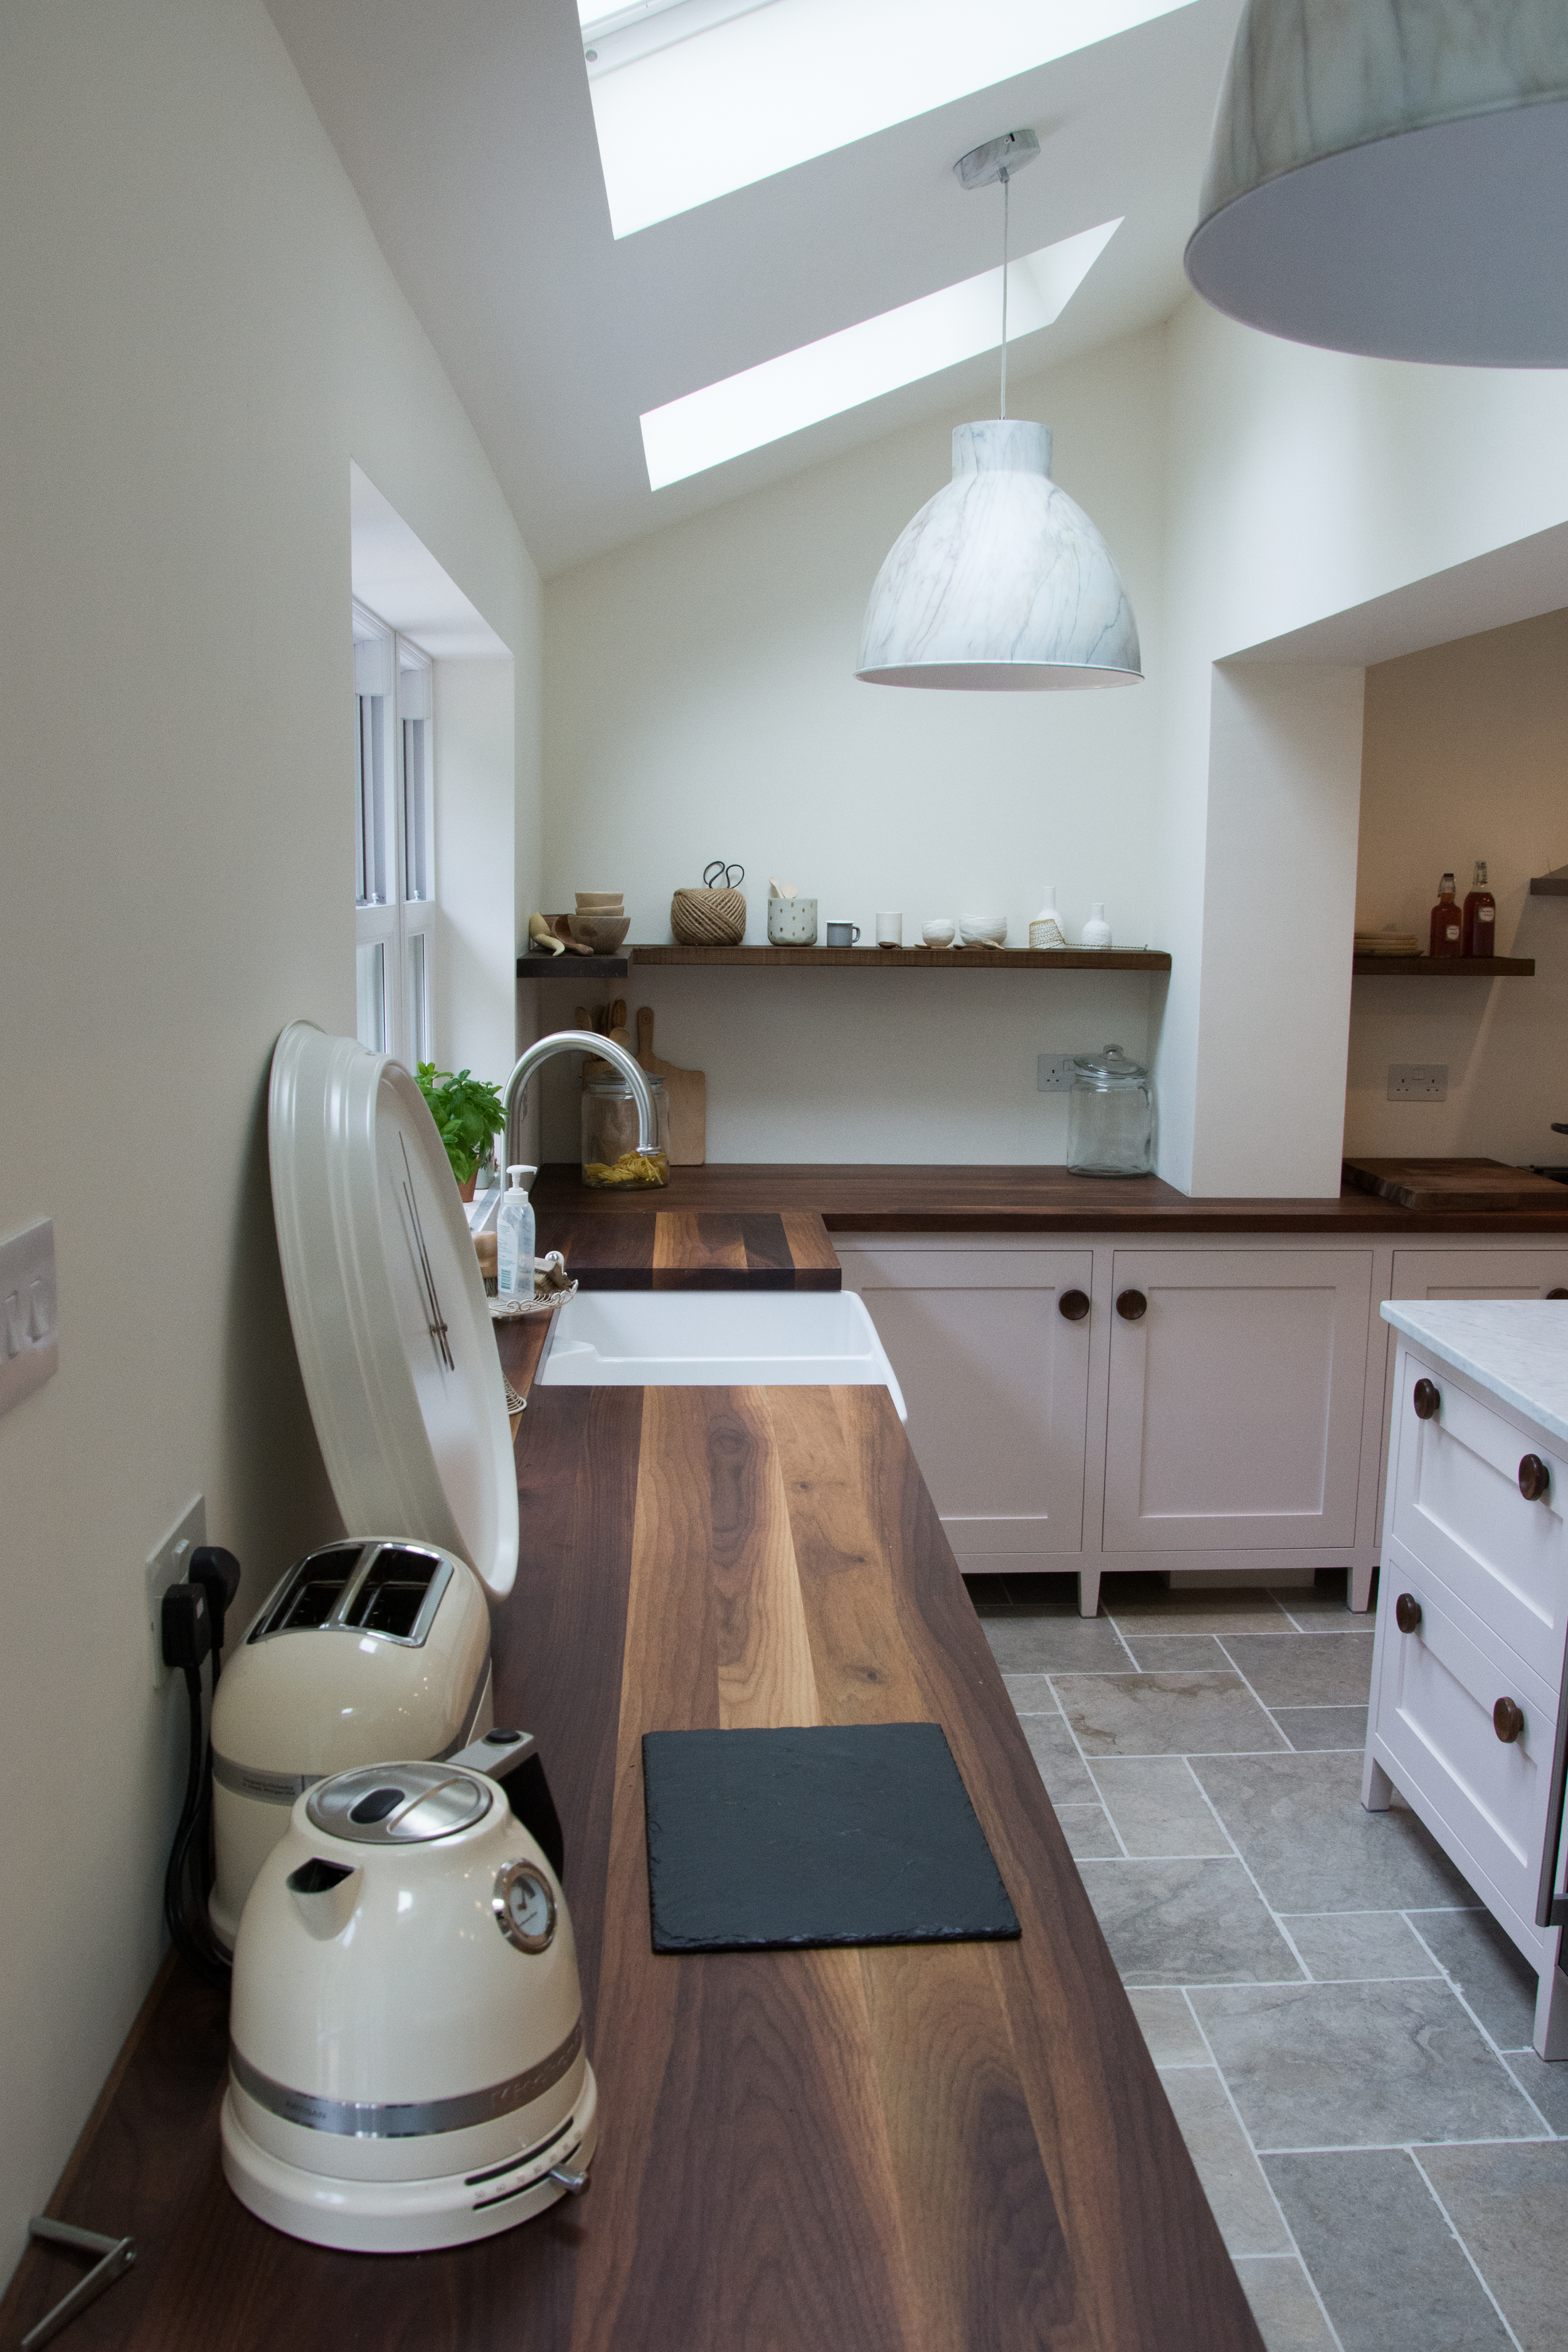 Handmade freestanding kitchen